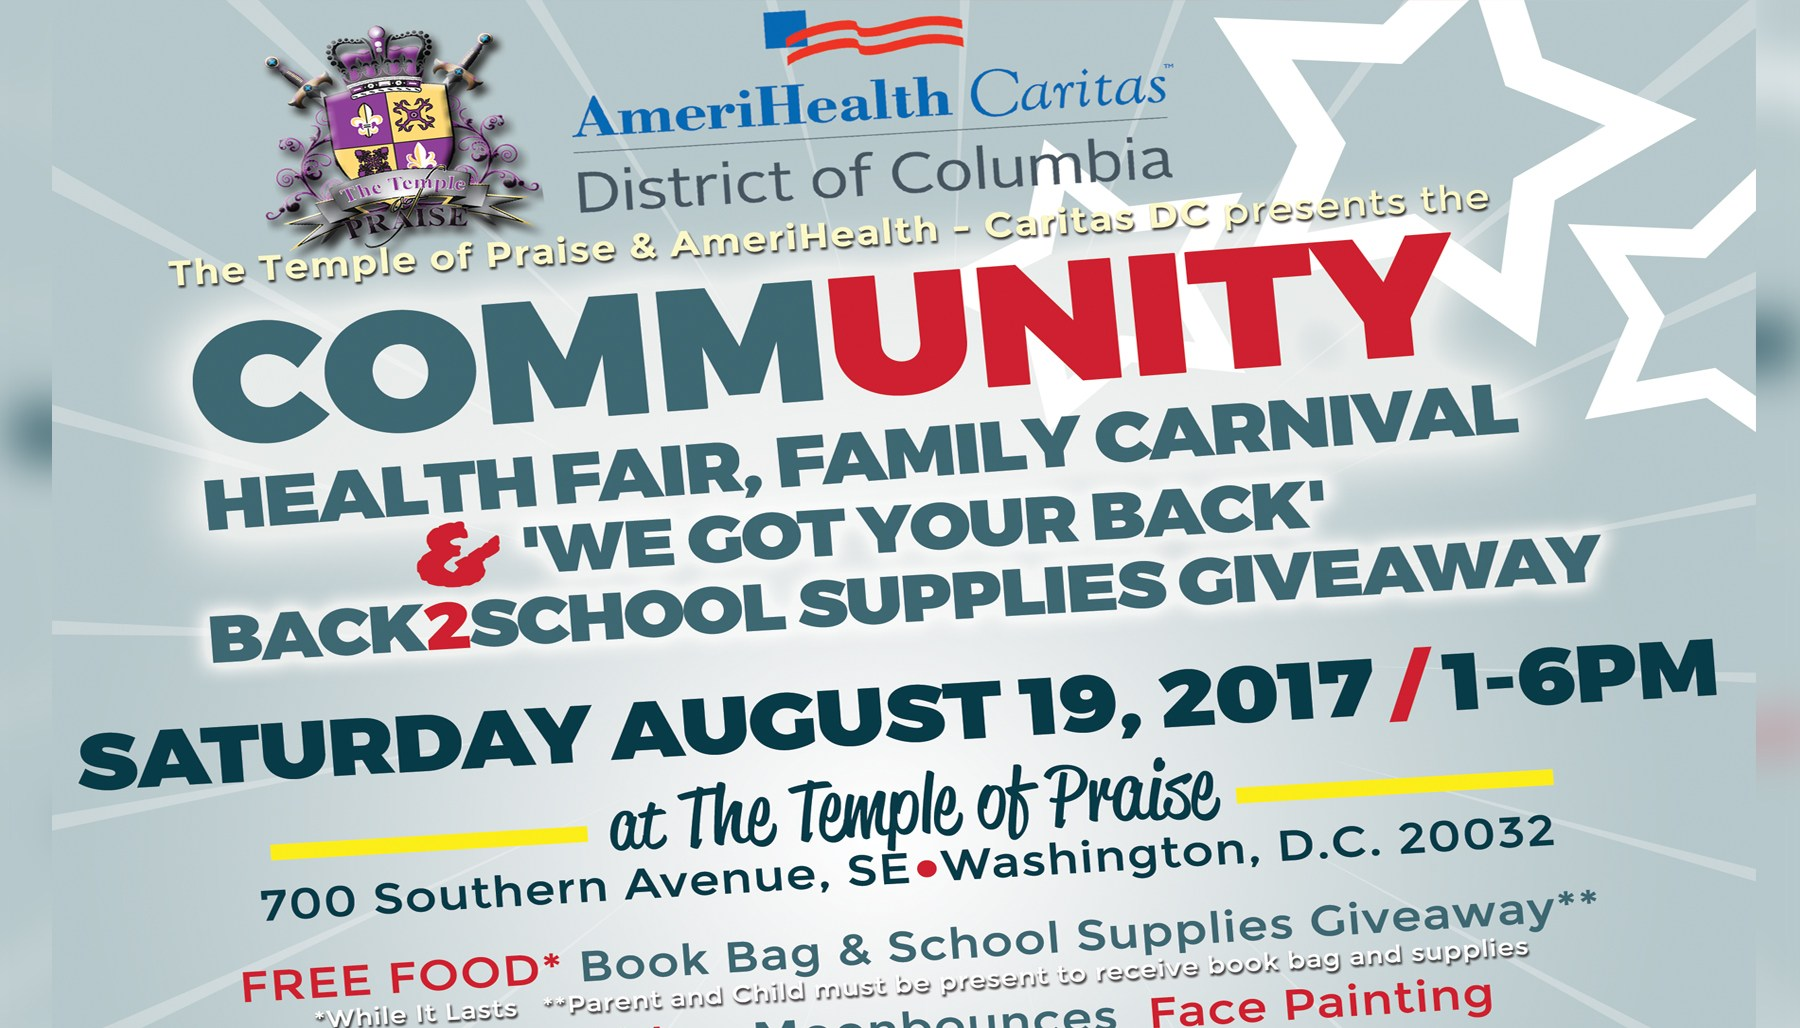 Amerihealth Caritas Community Health Fair, Carnival & More